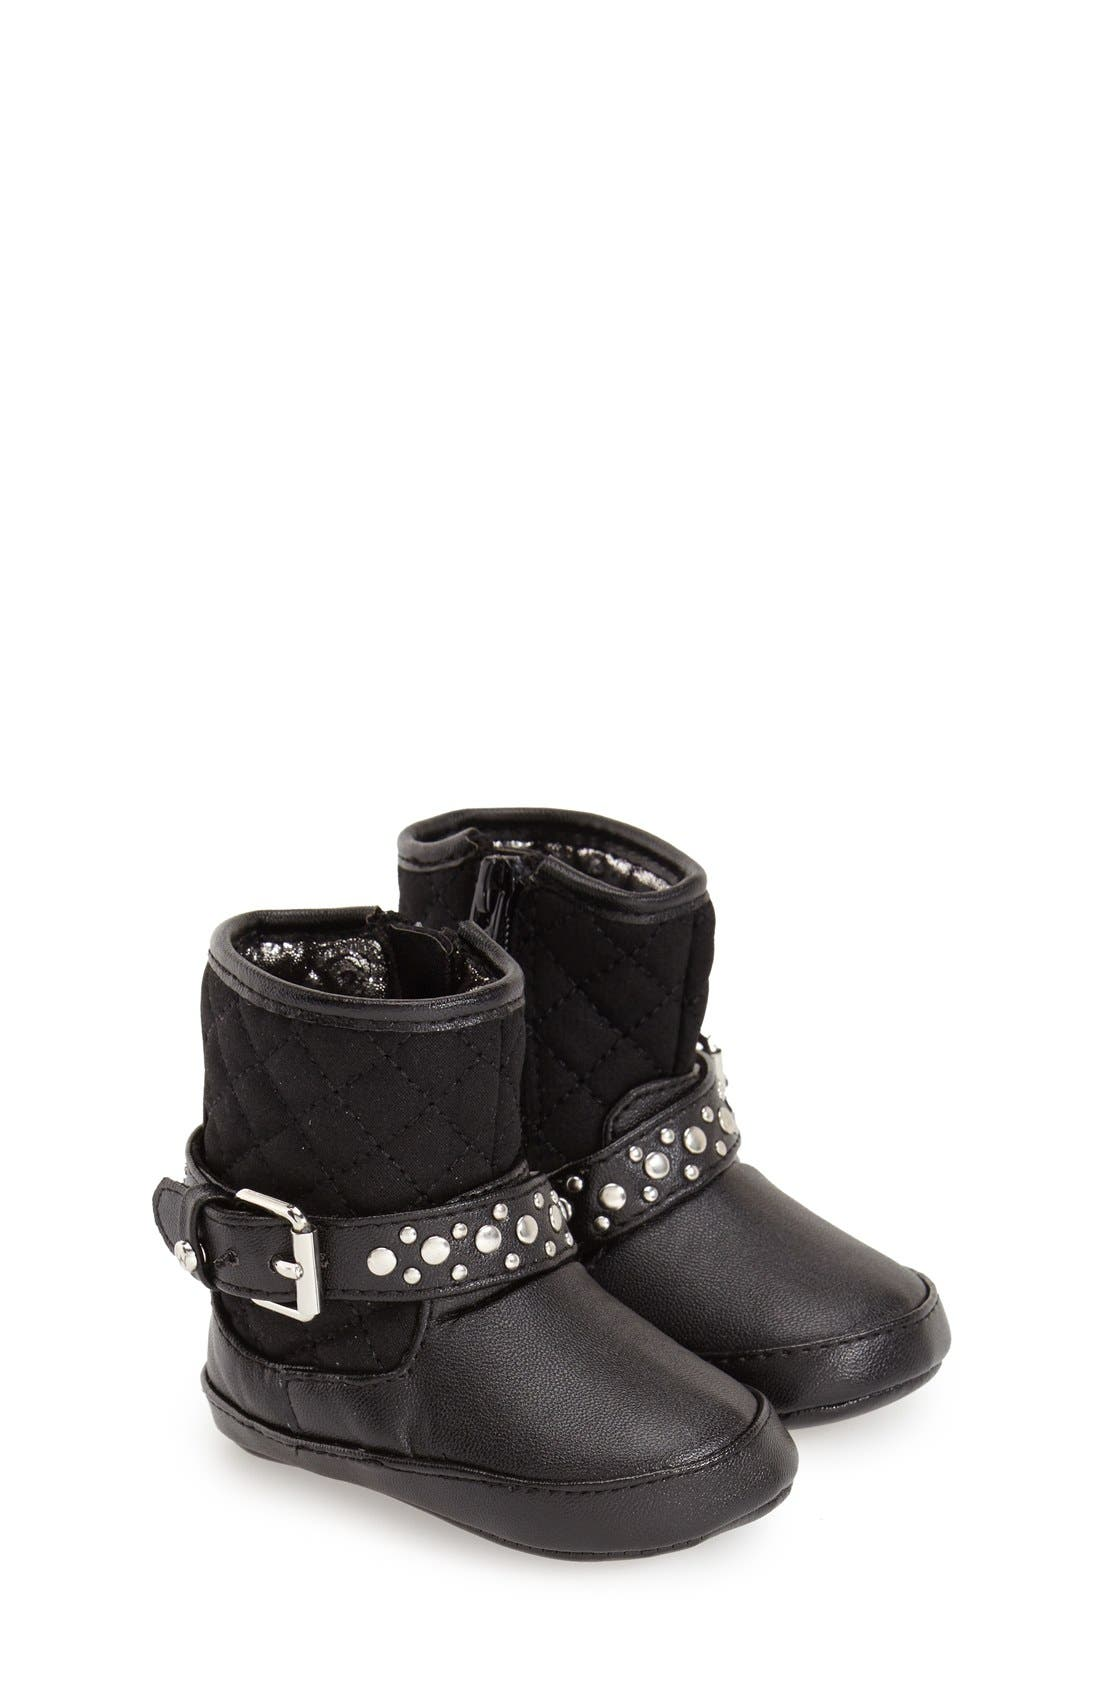 'Baby Bella - Kristi' Boot, Main, color, 001